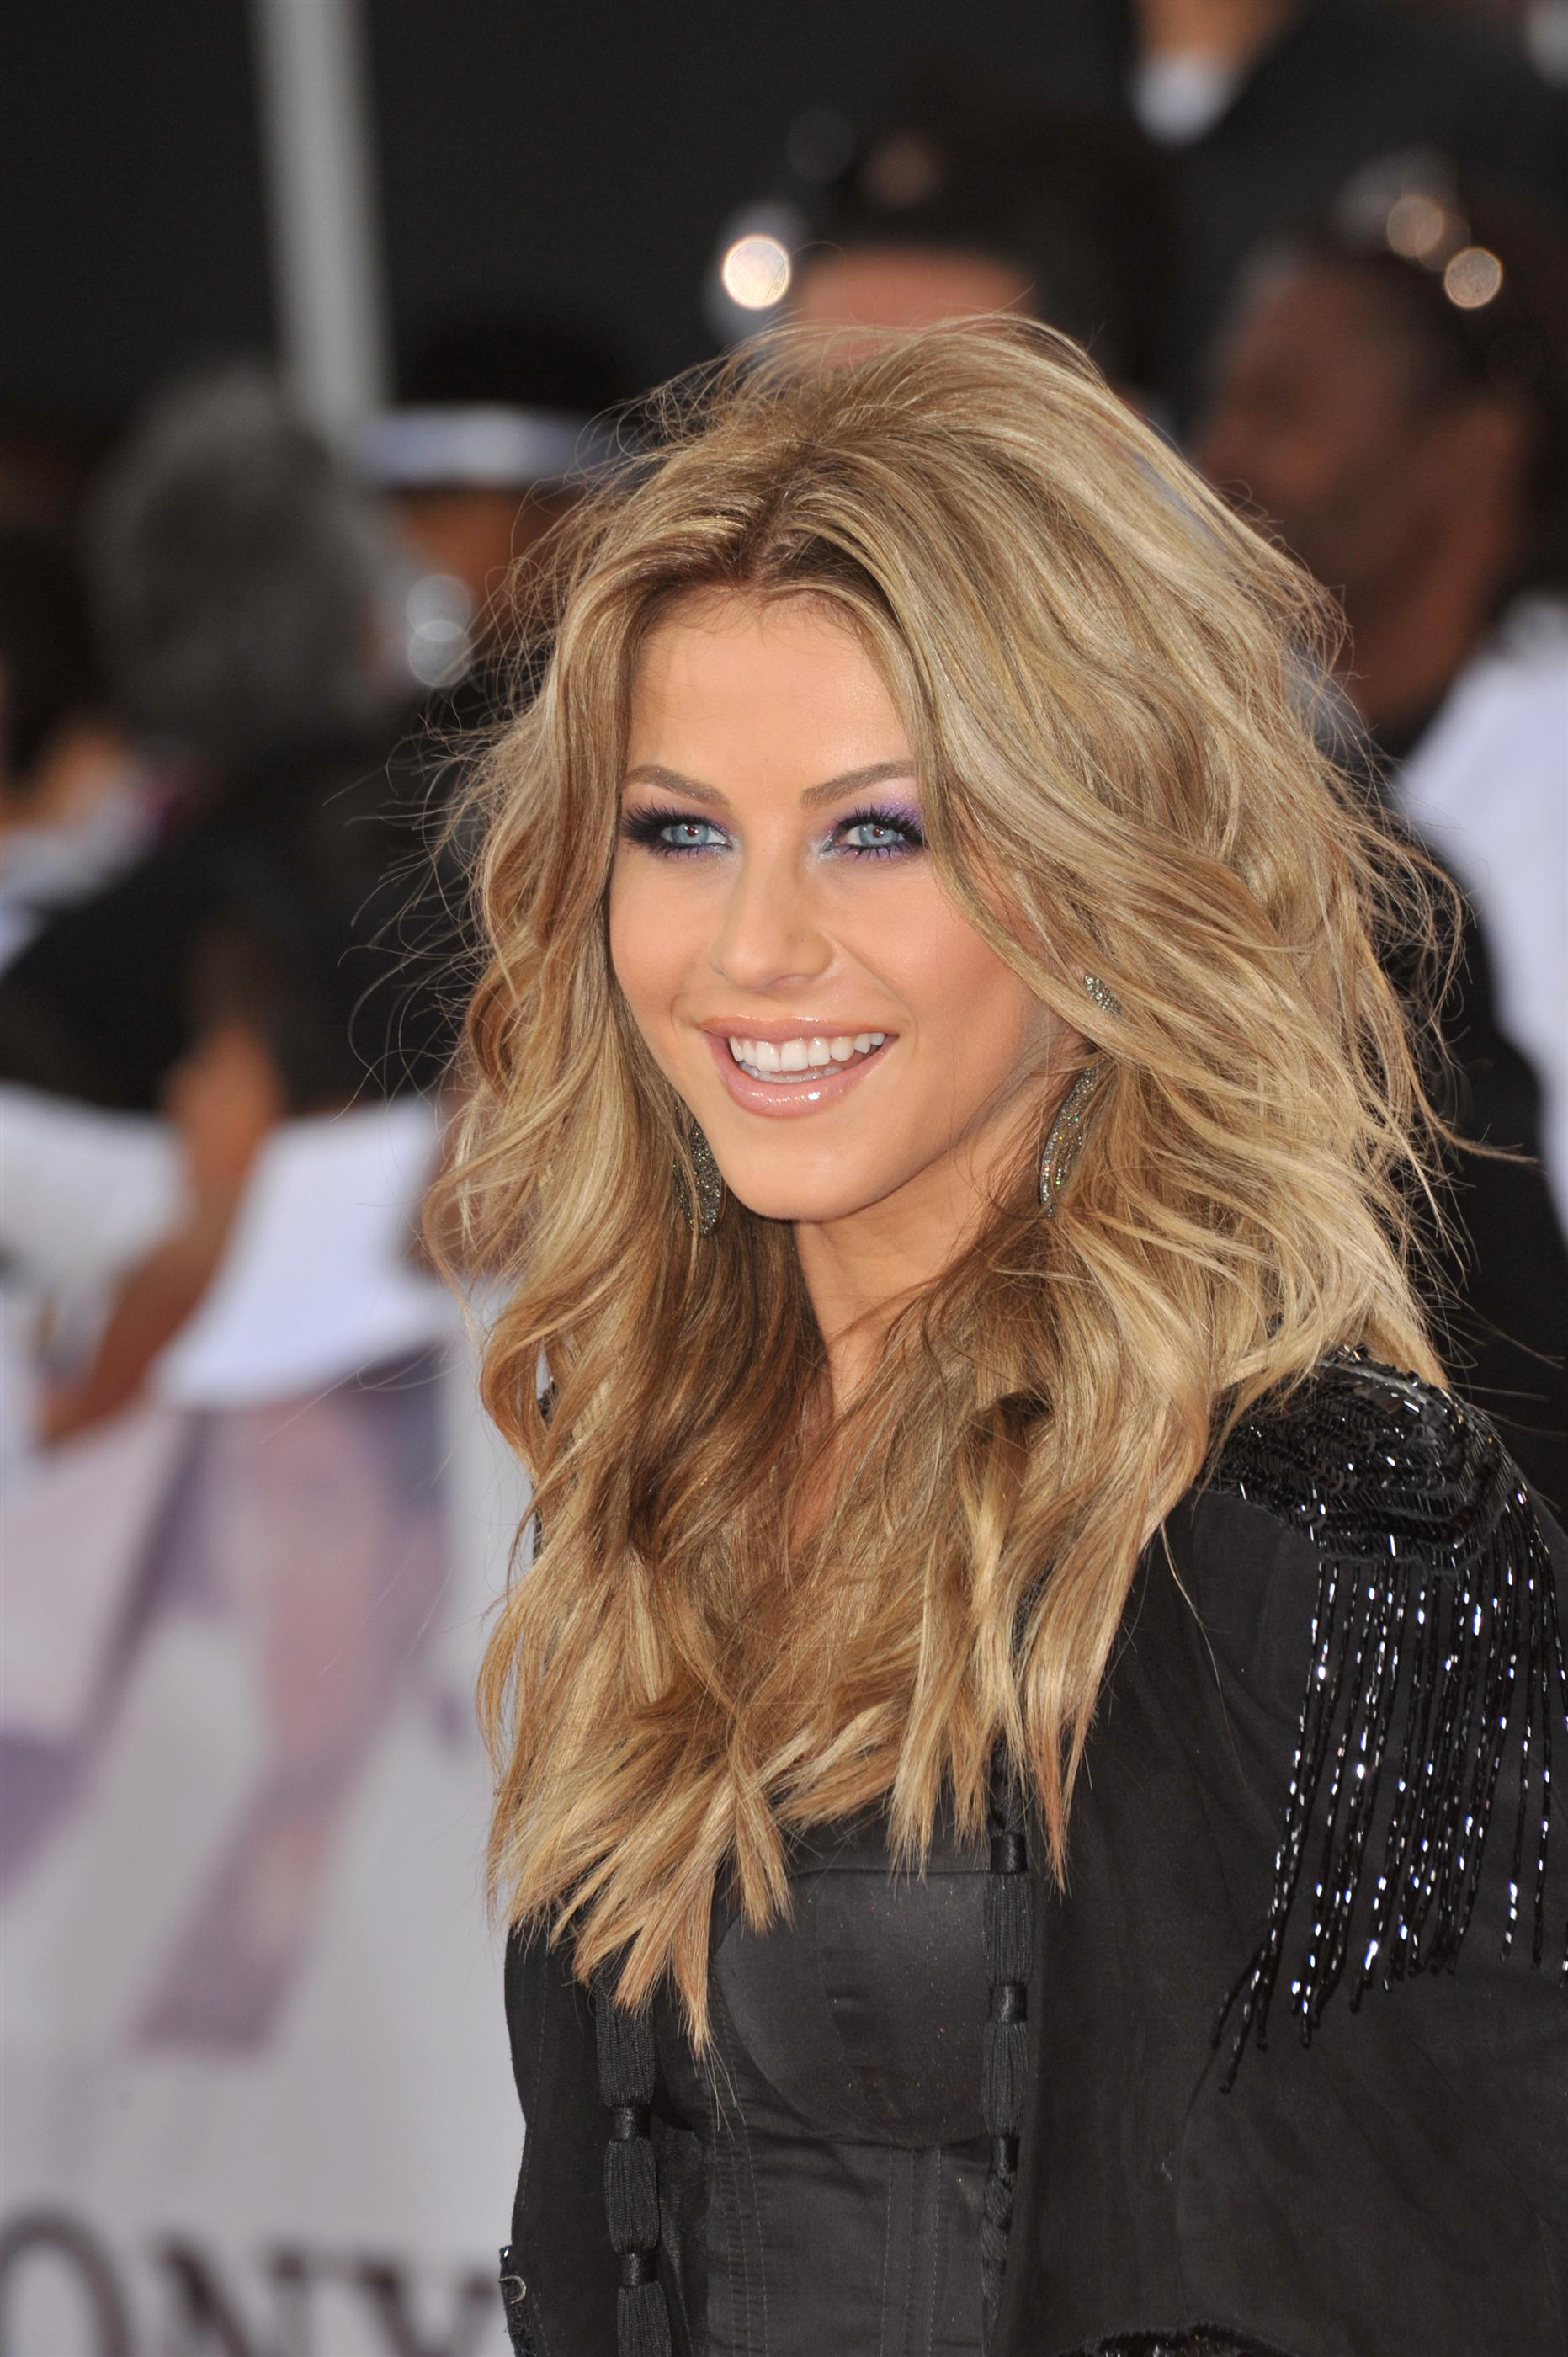 Julianne Hough's dark blonde hair love it! | Most Popular Pins